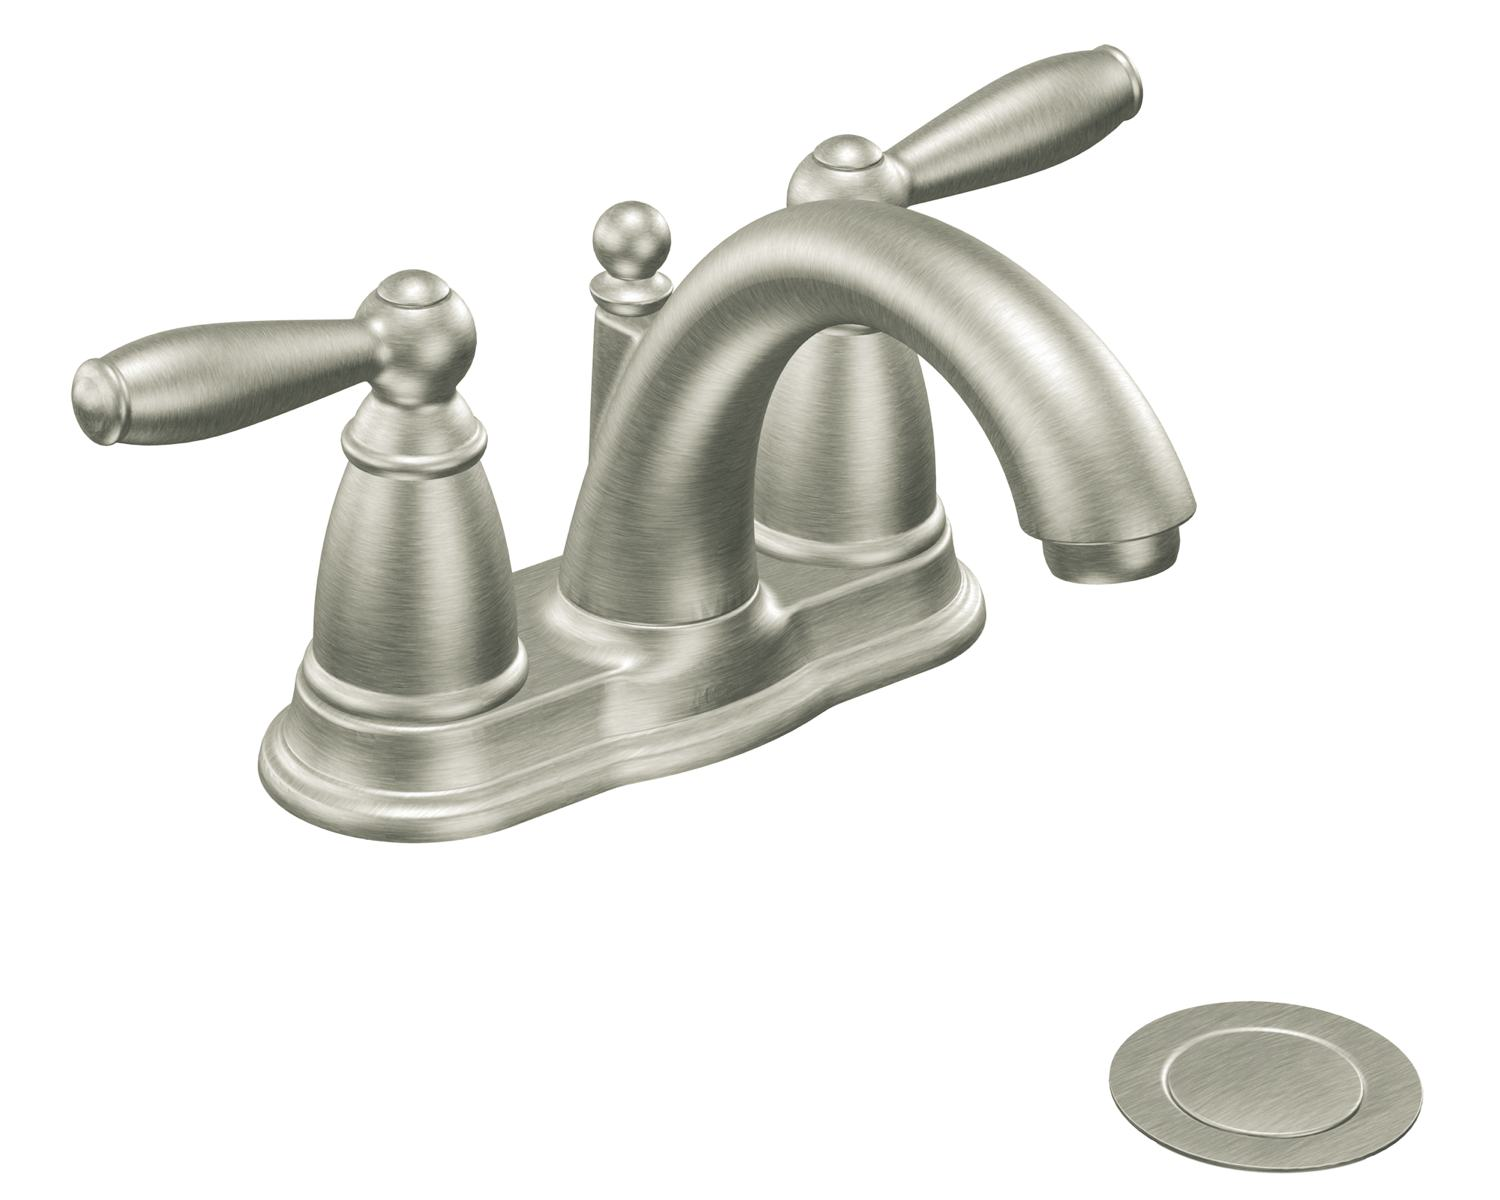 Brushed Nickel Faucet Bathroom : Two-Handle Low Arc Bathroom Faucet with Drain Assembly, Brushed Nickel ...